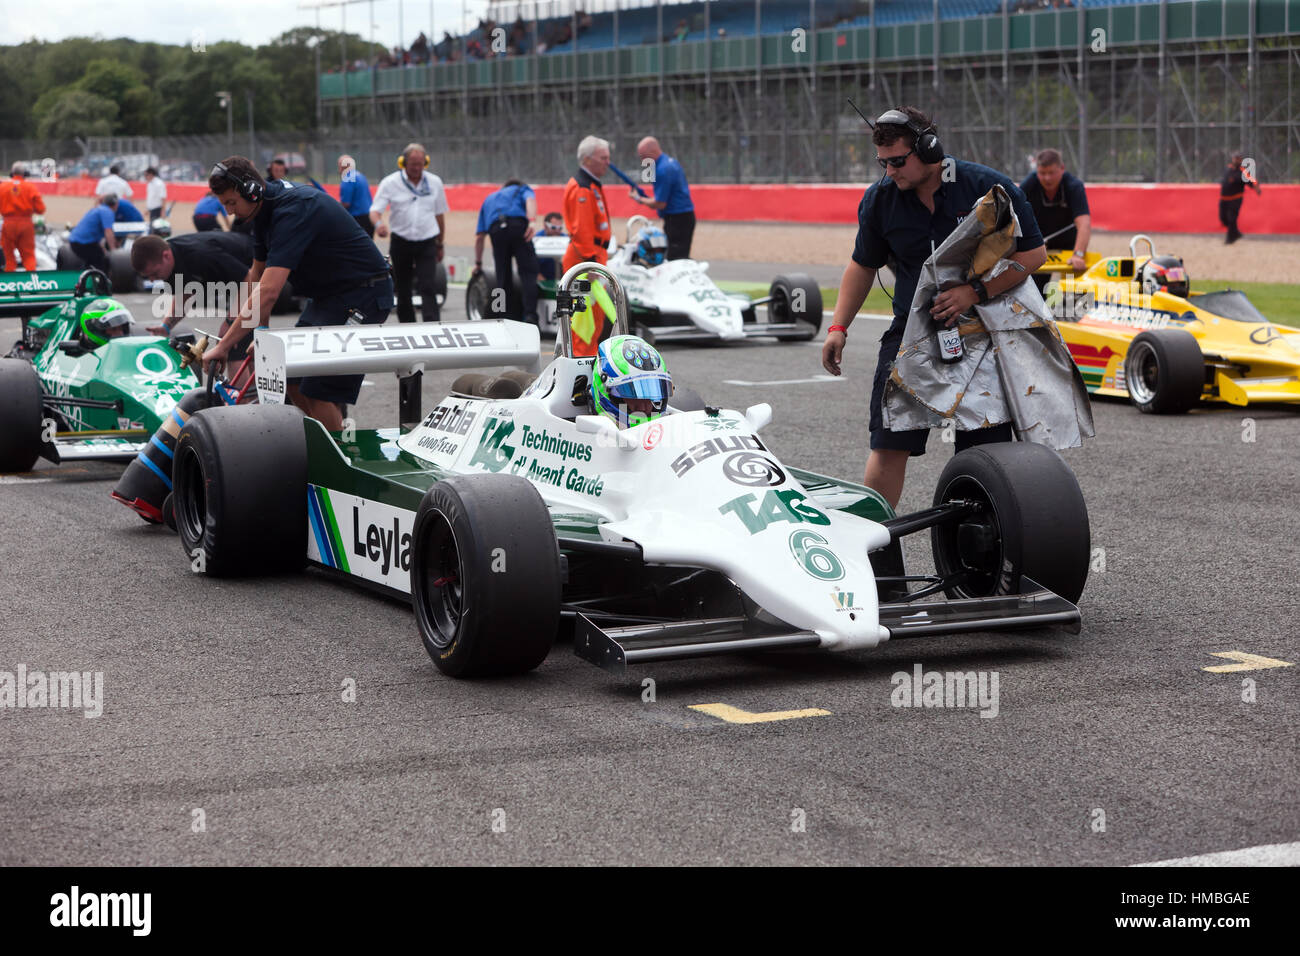 On the starting grid of the 2016 FIA Masters Historic Formula One ...